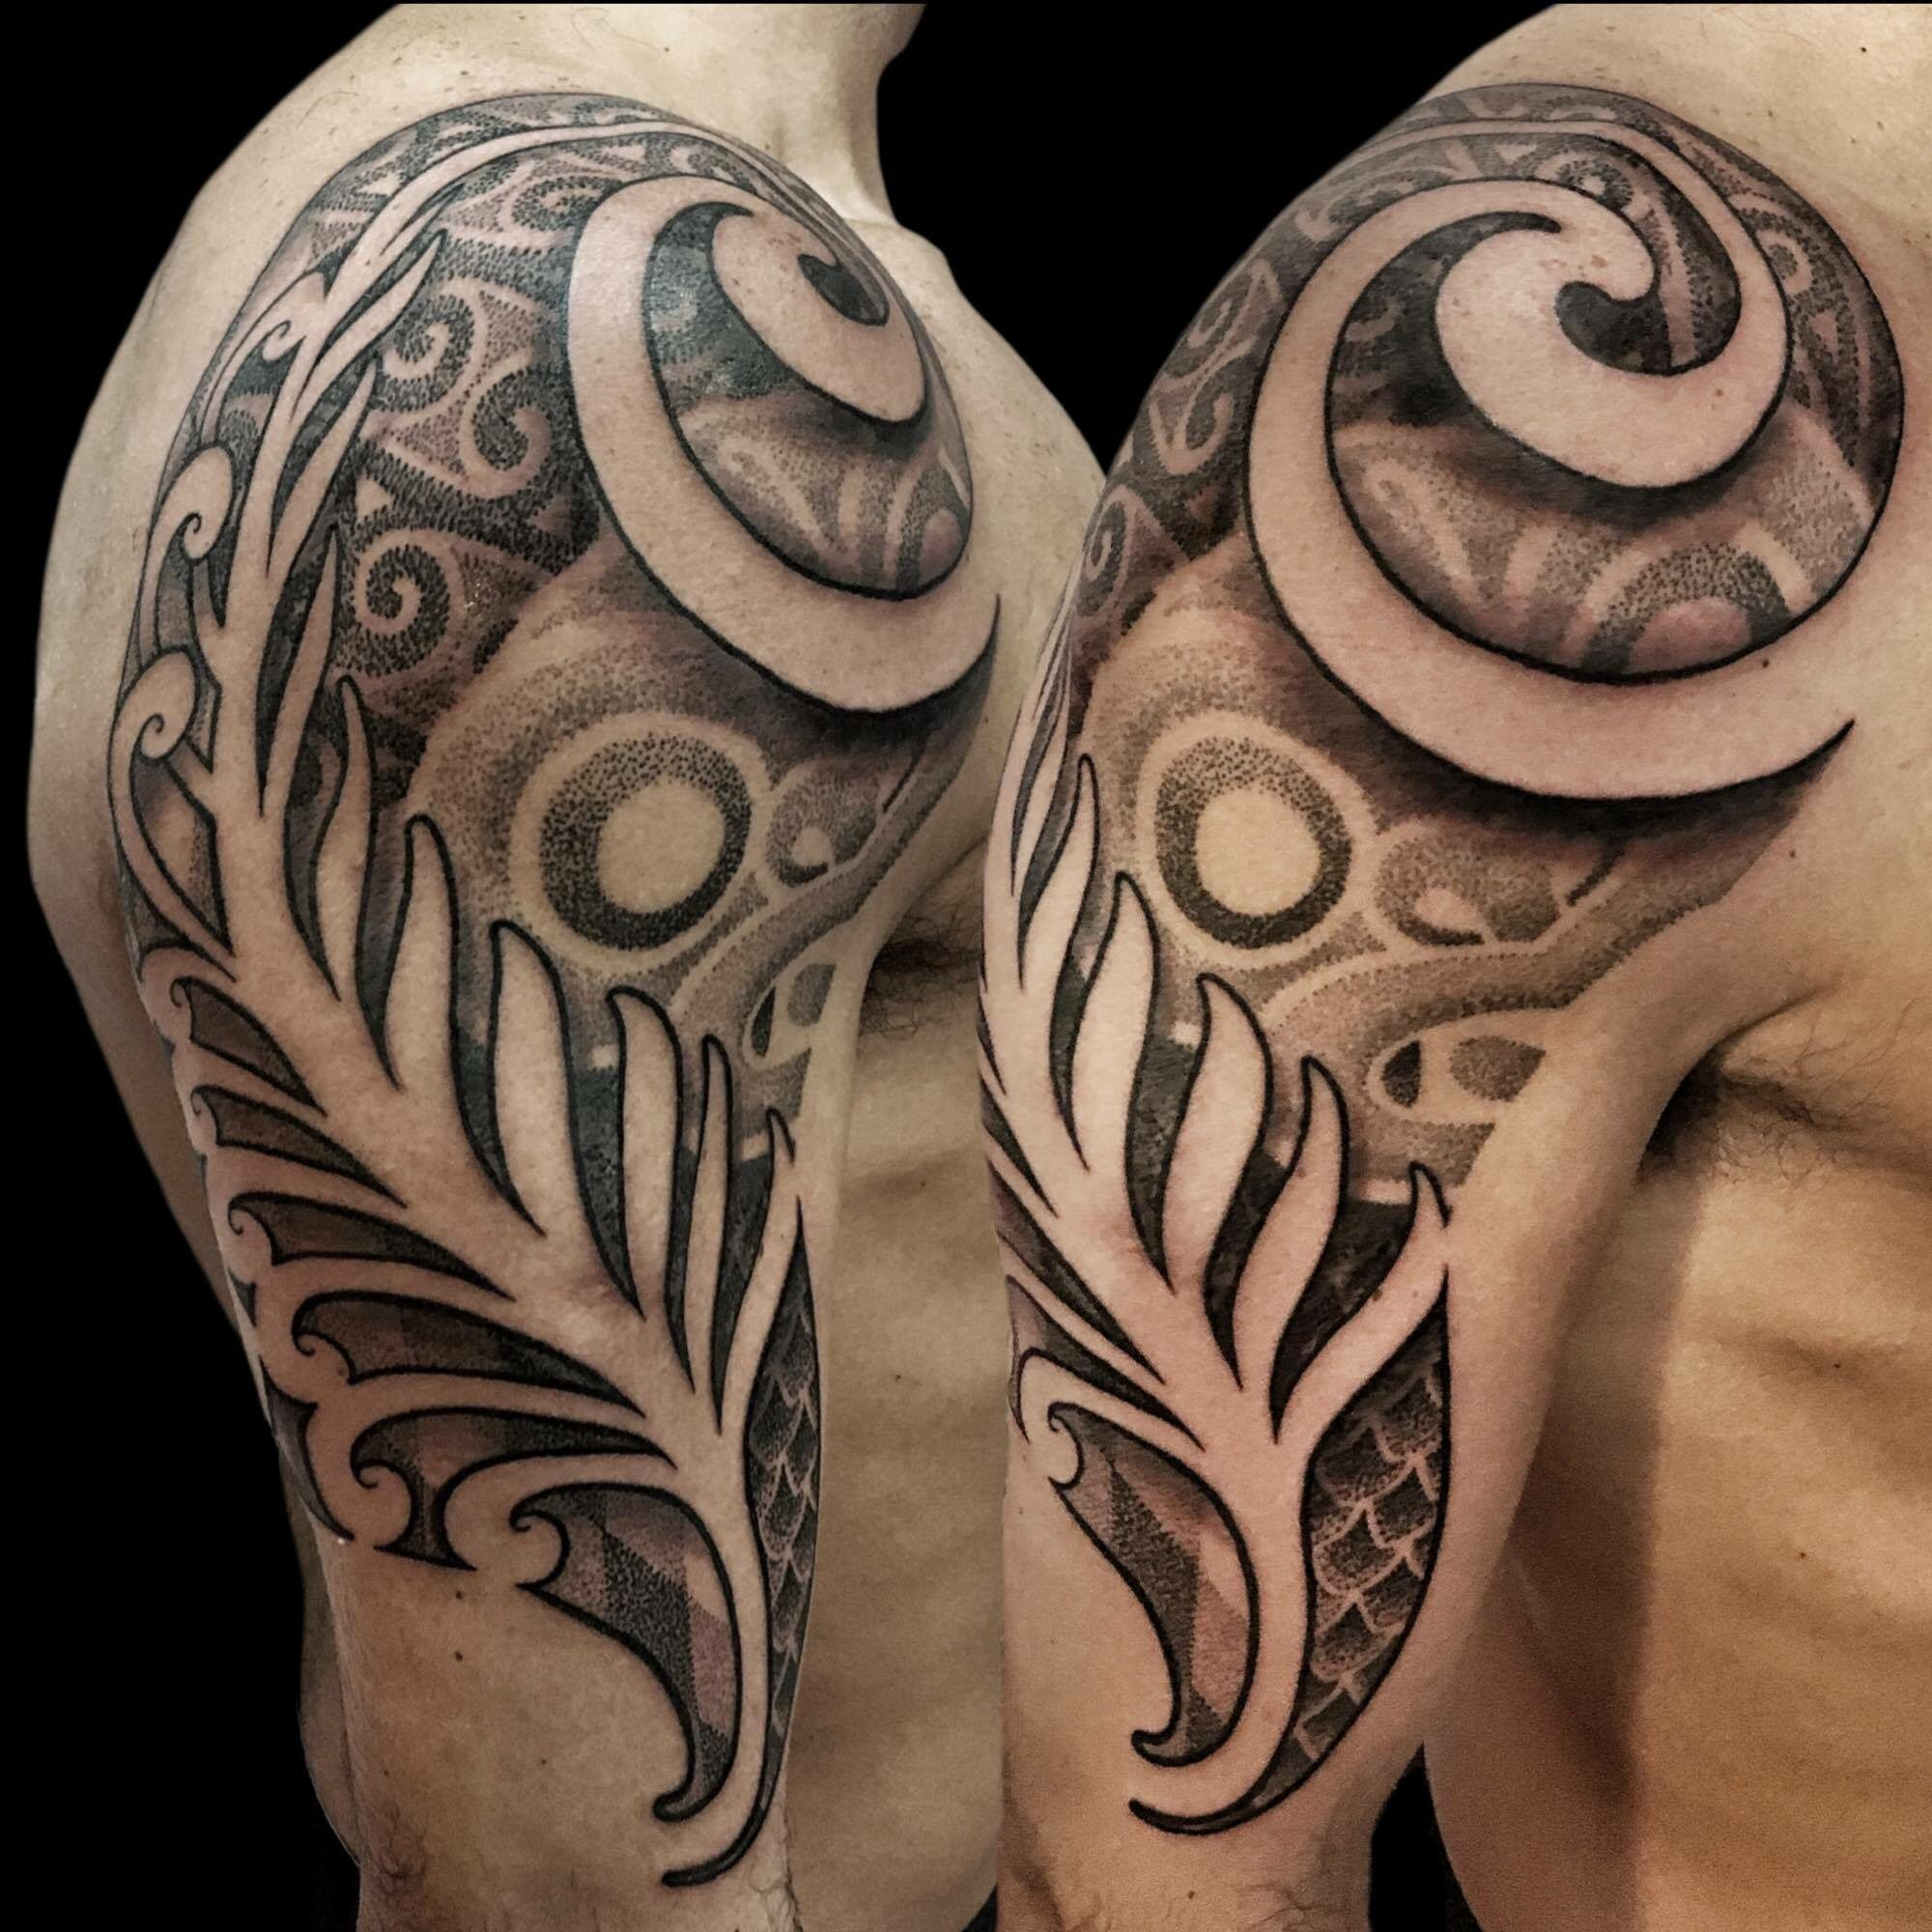 Maori and New Zealand inspired geometric dotwork tribal